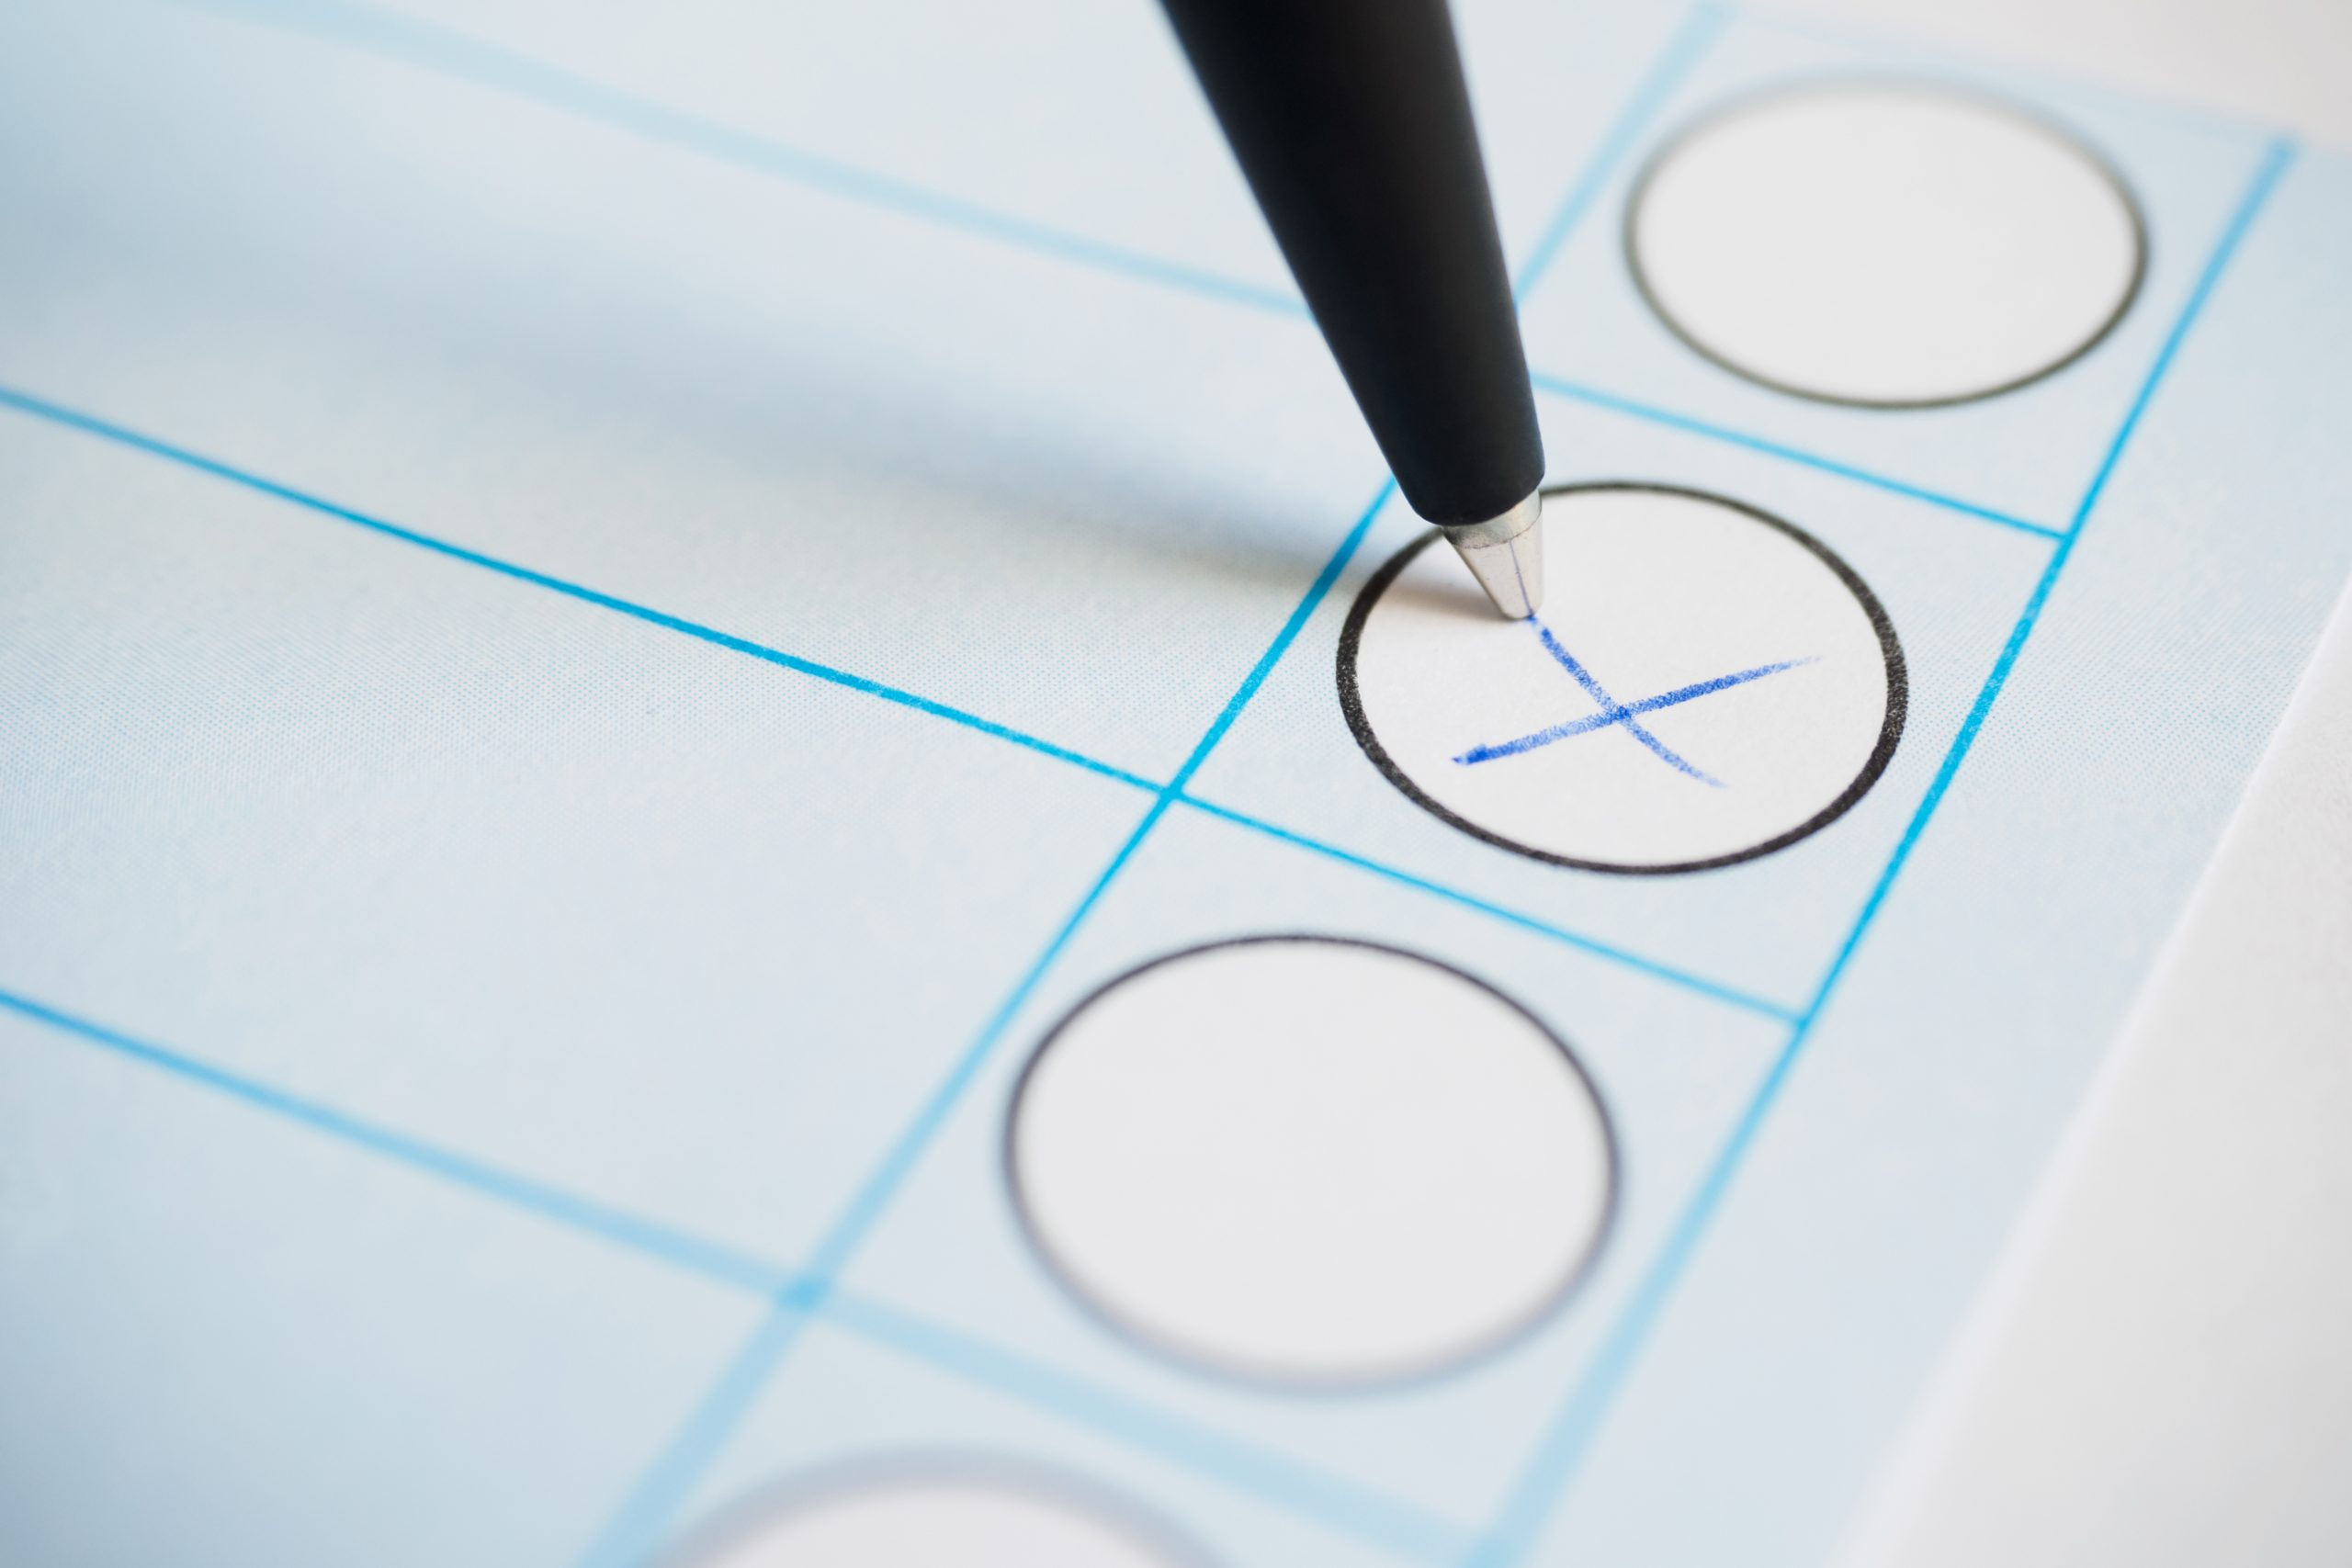 Voting paper or ballot paper with pen